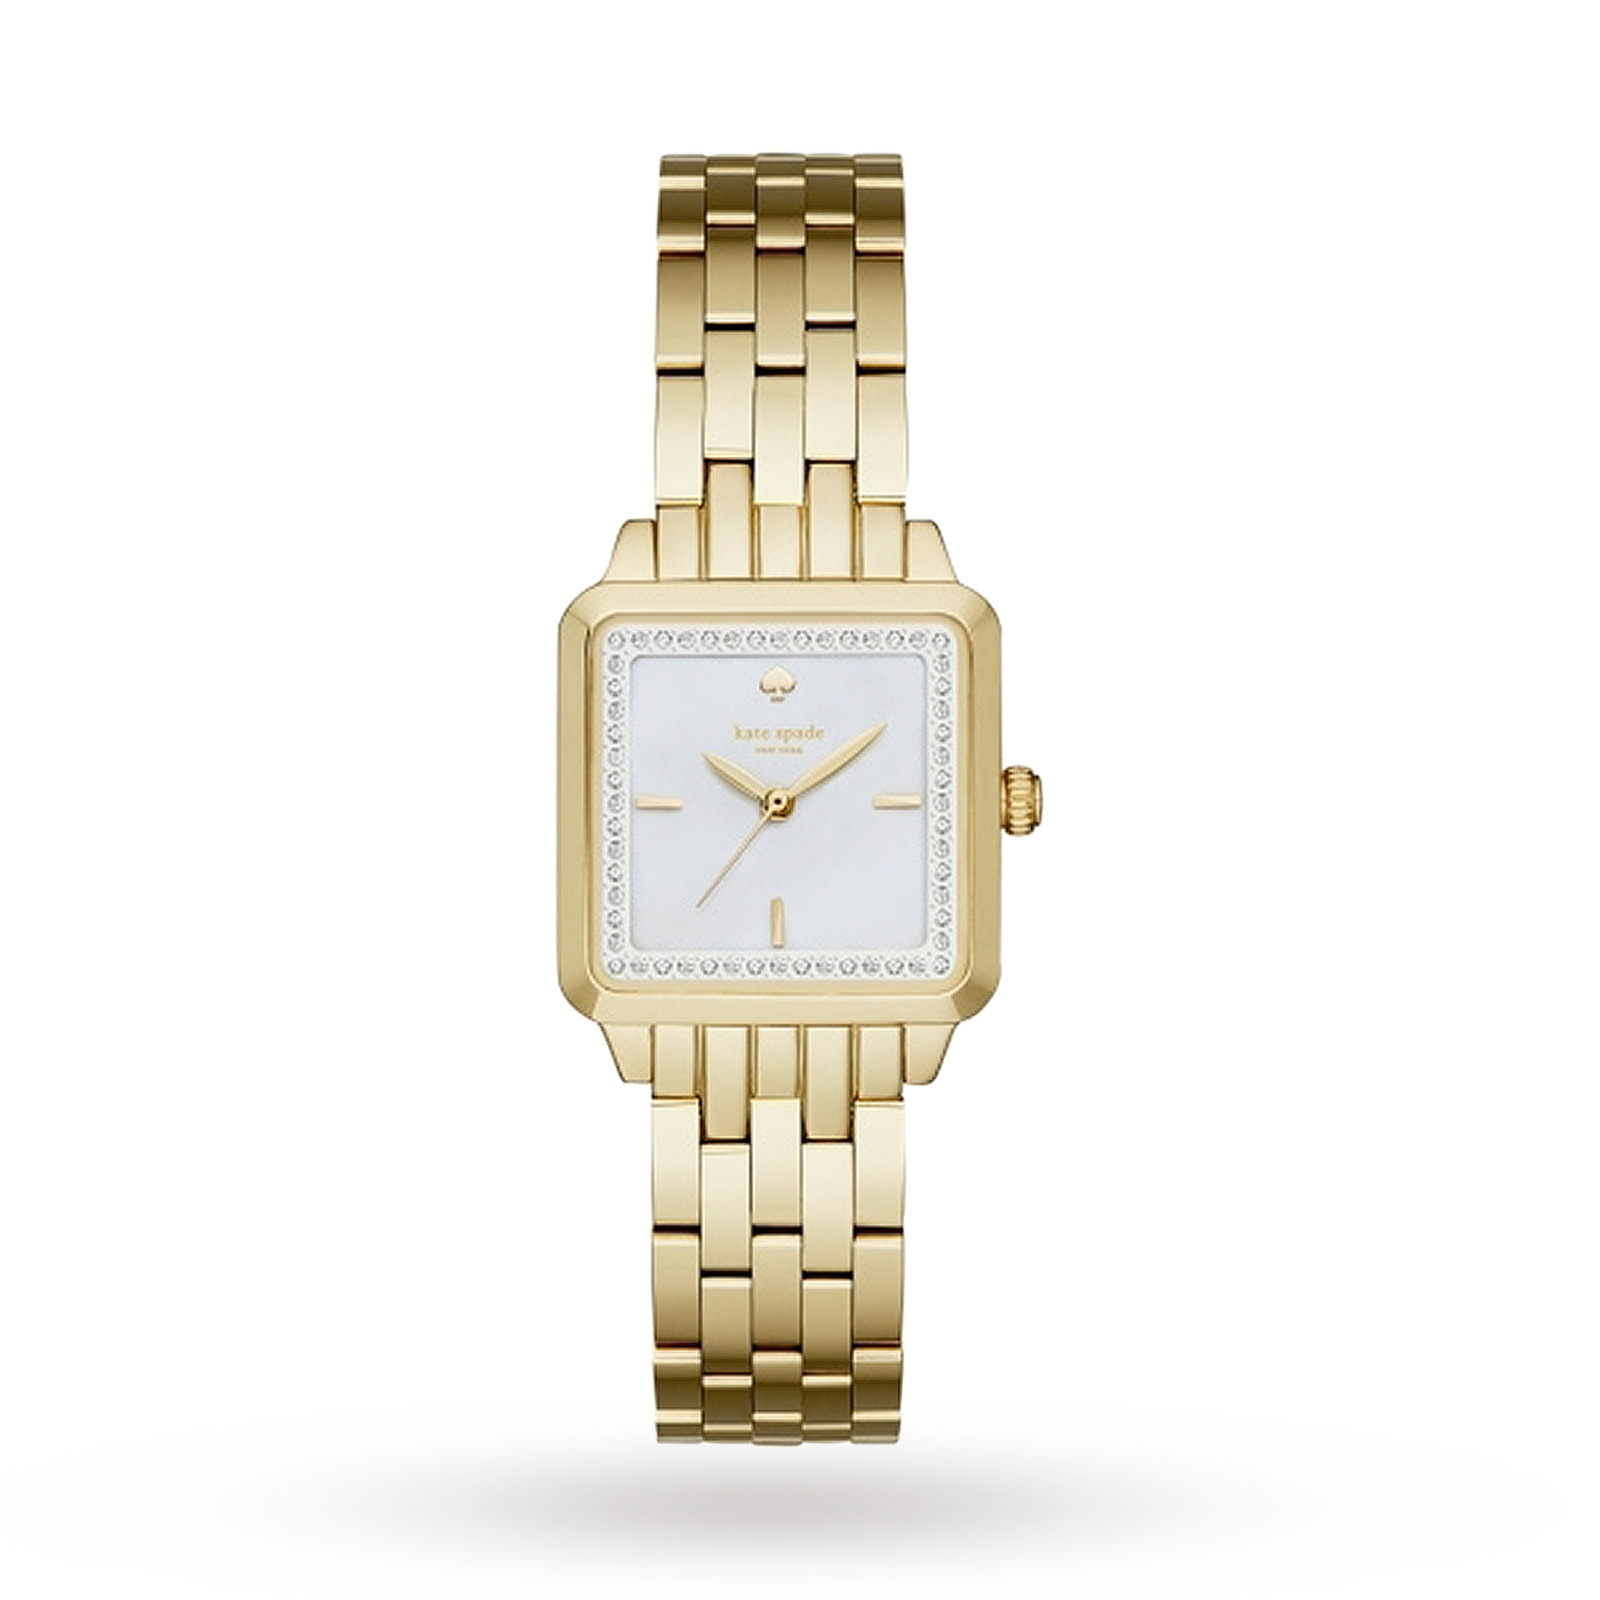 Kate Spade New York Washington Square Watch